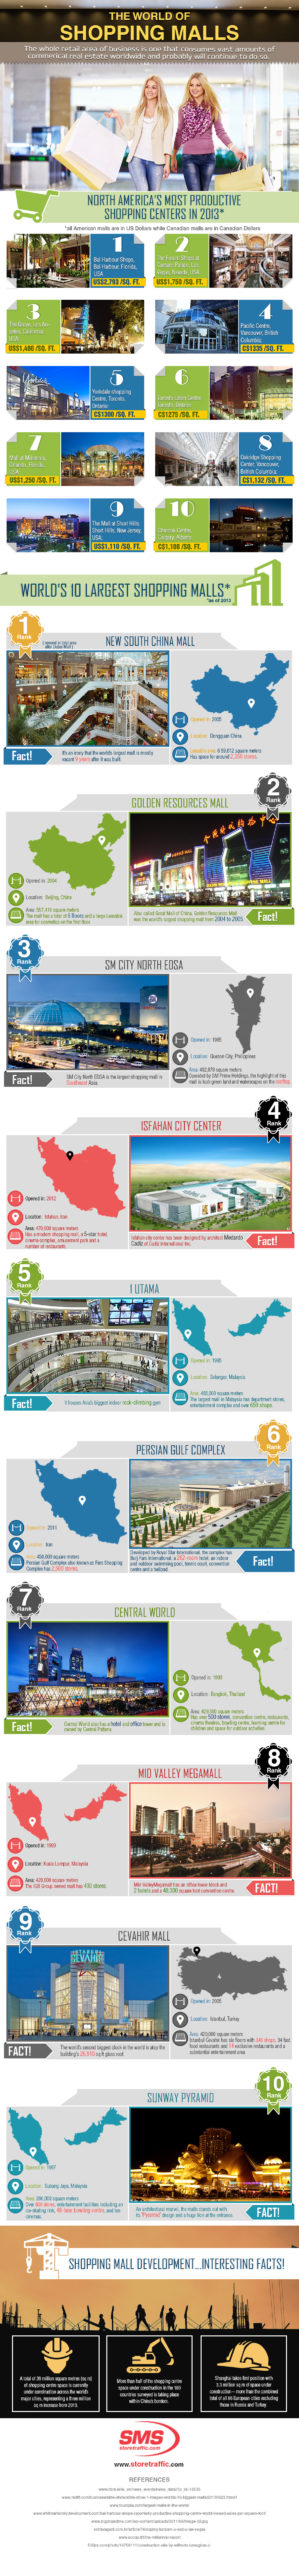 most productive shopping centers facts infographic